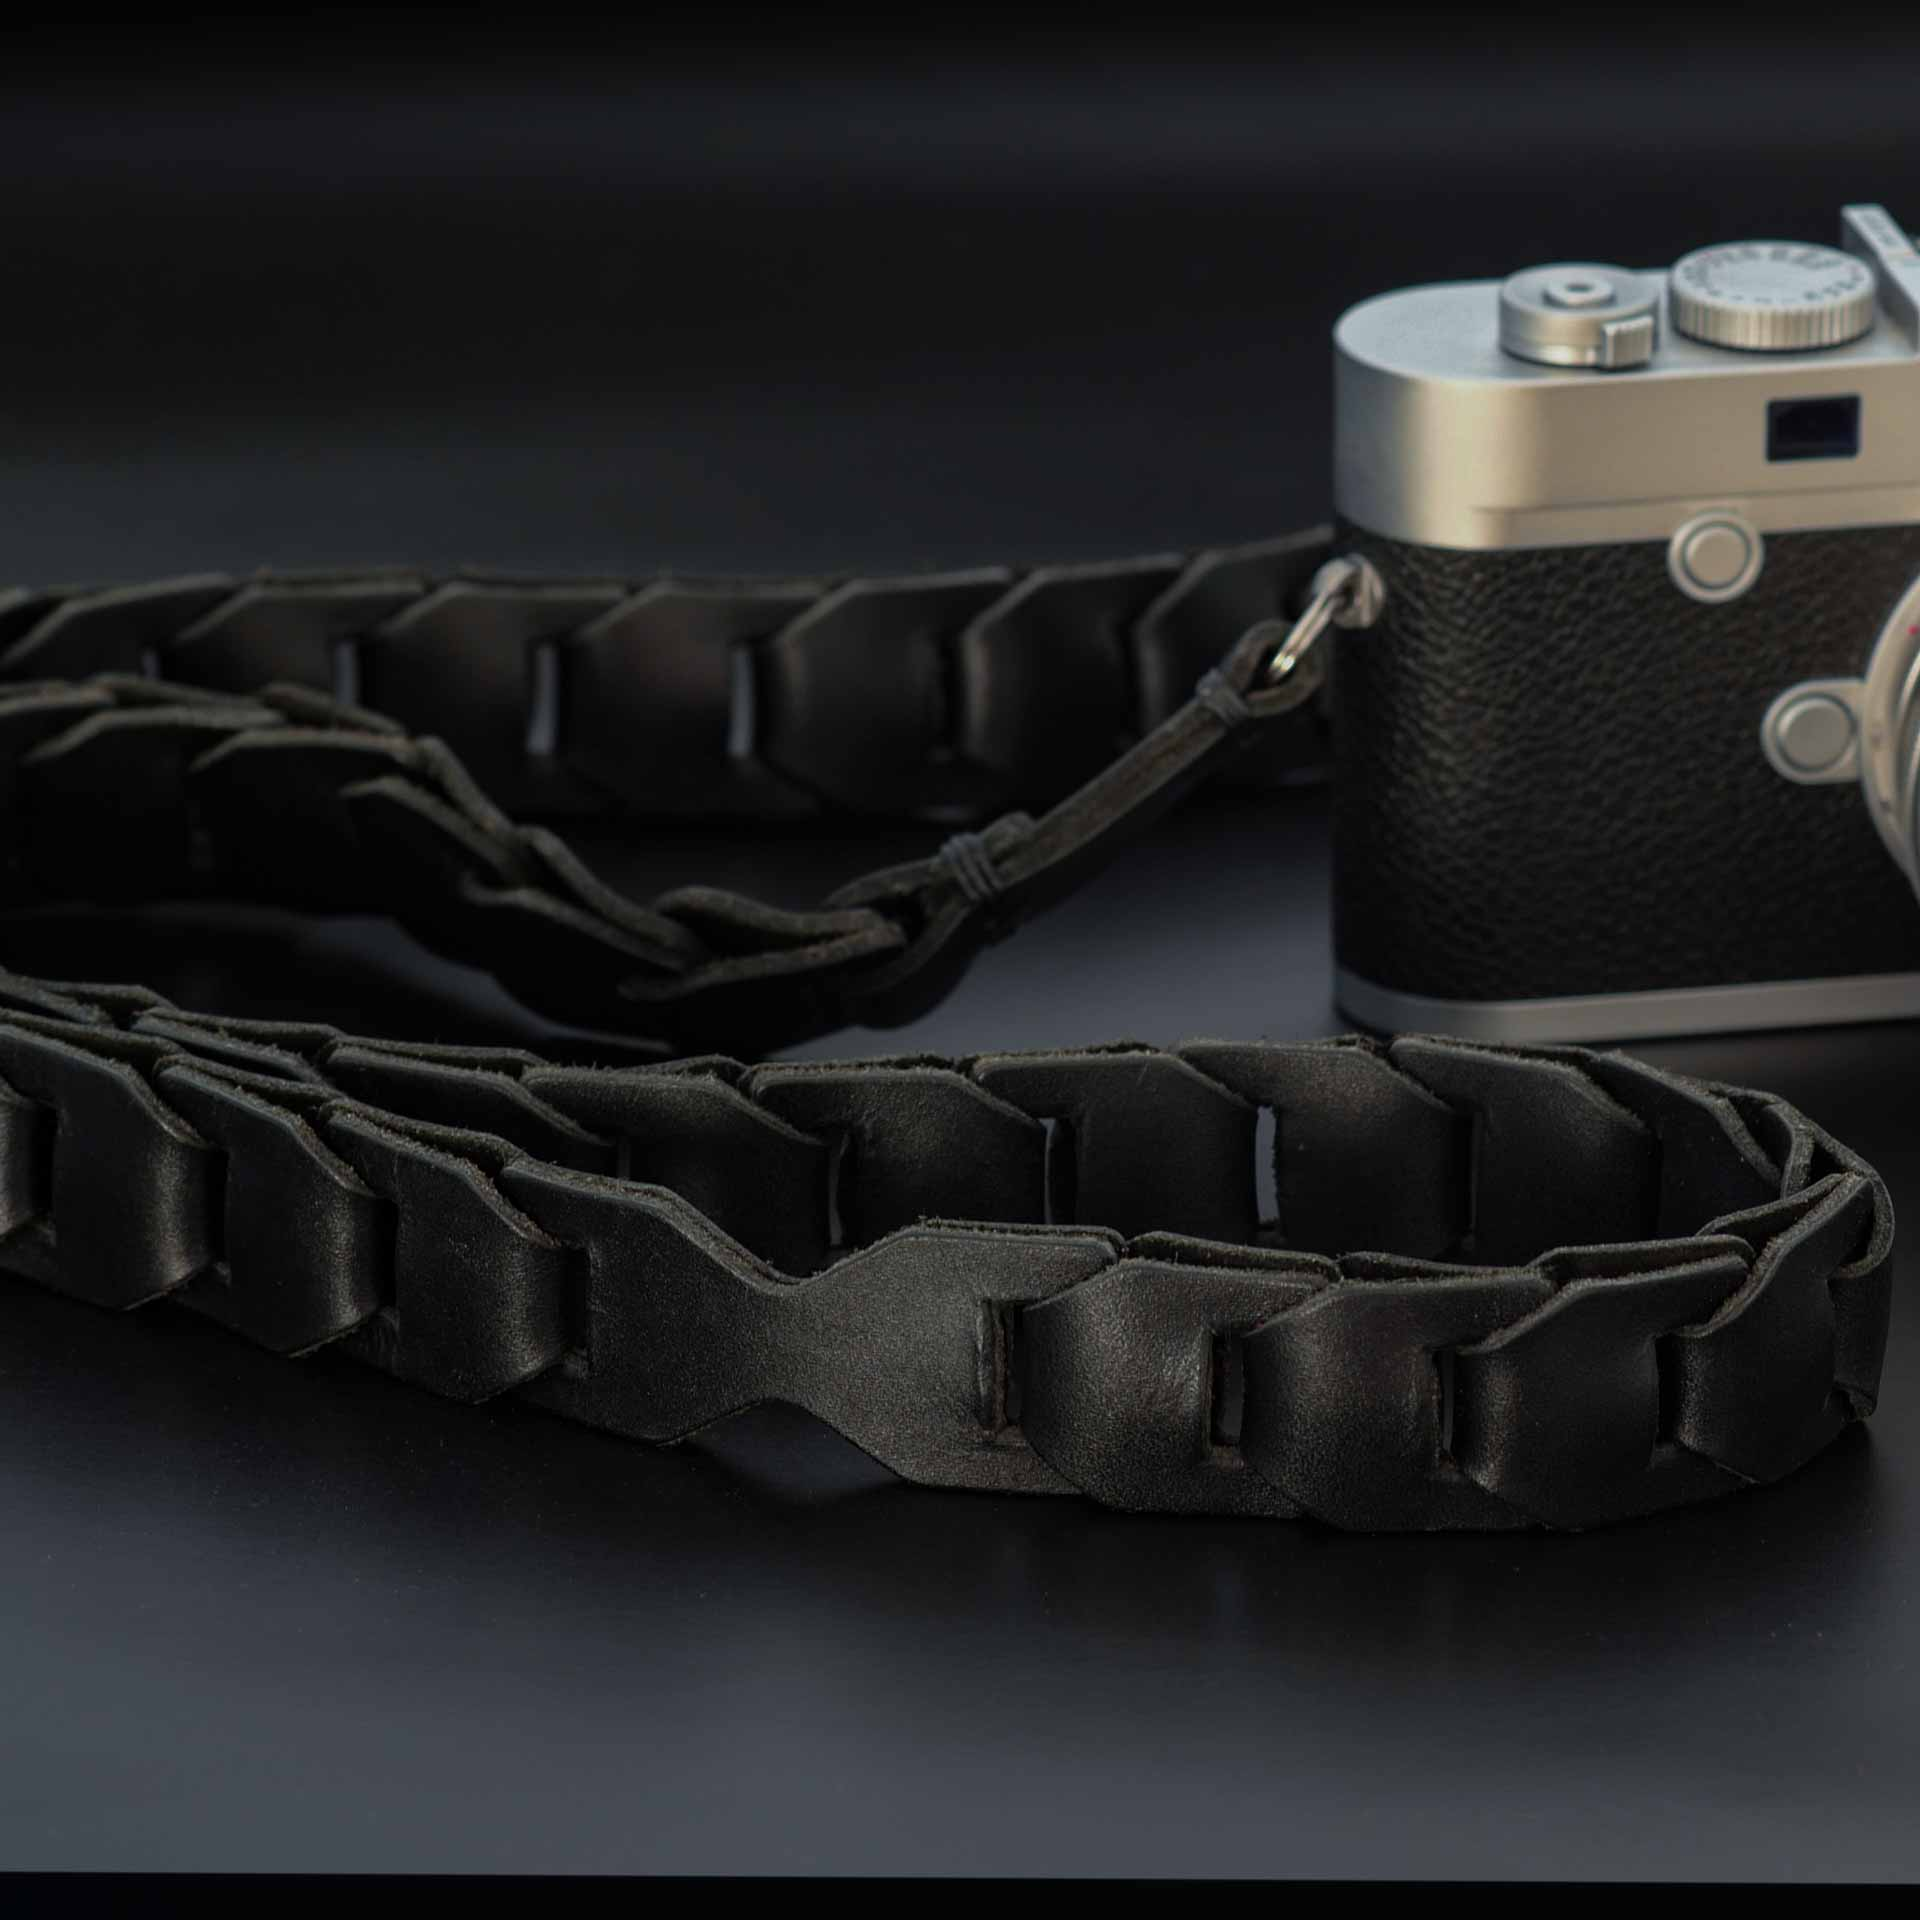 leica m strap, leather camera strap, handmade leather camera strap, leica camera strap, mirrorless camera strap, handmade camera strap, black camera strap